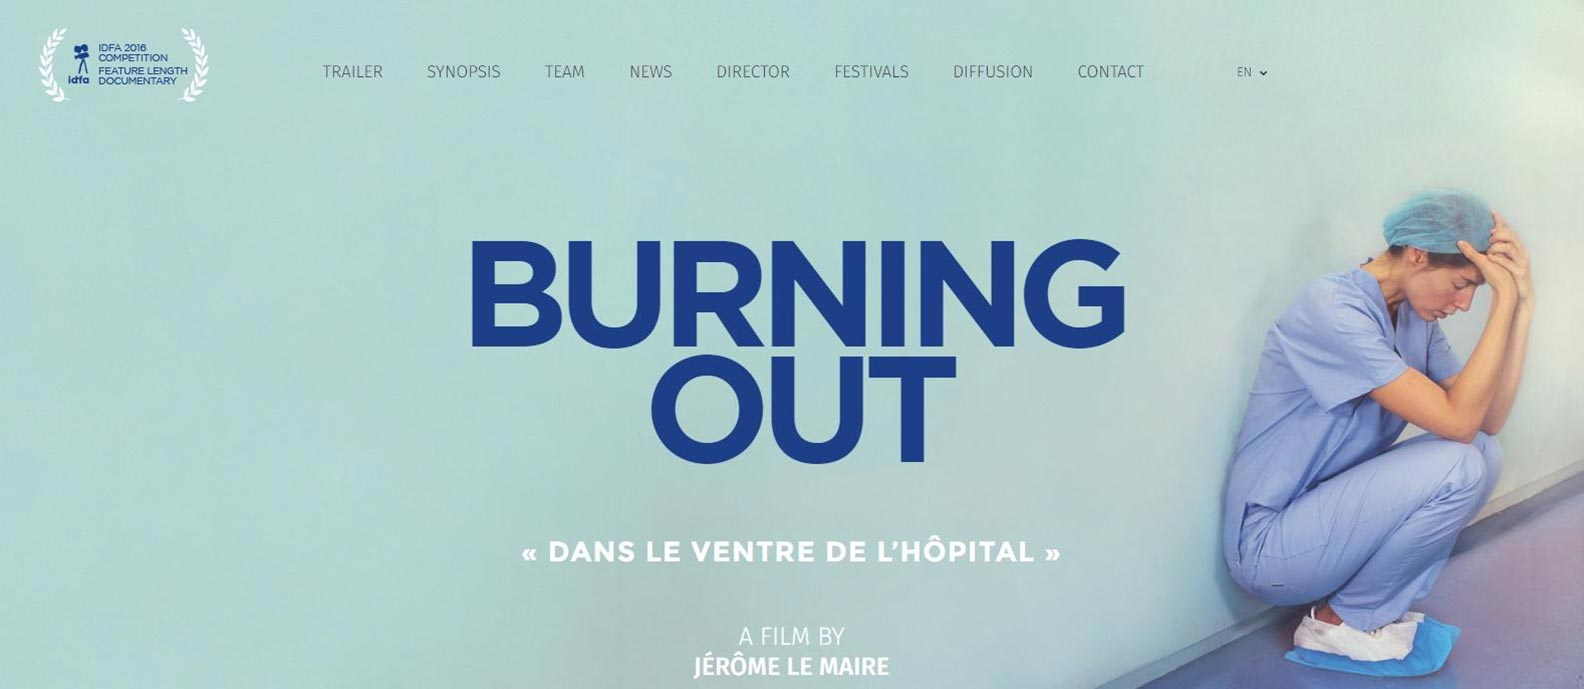 Burning Out Poster #1